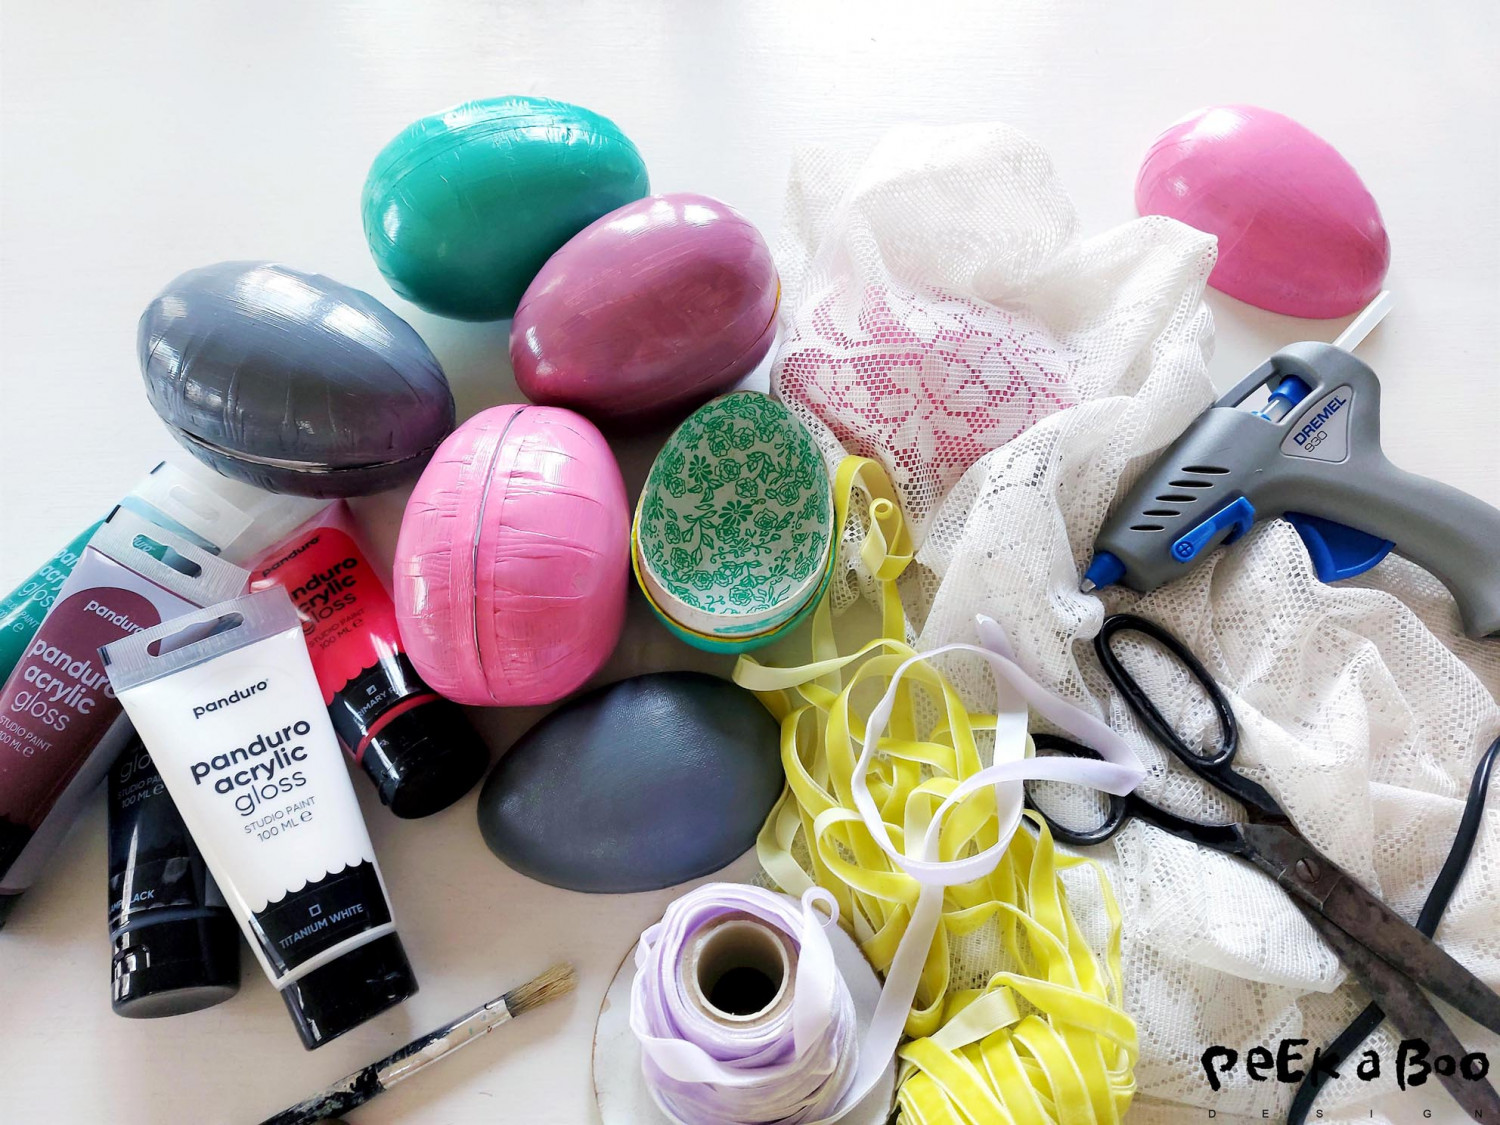 These are the materials you'll need for the easter DIY project